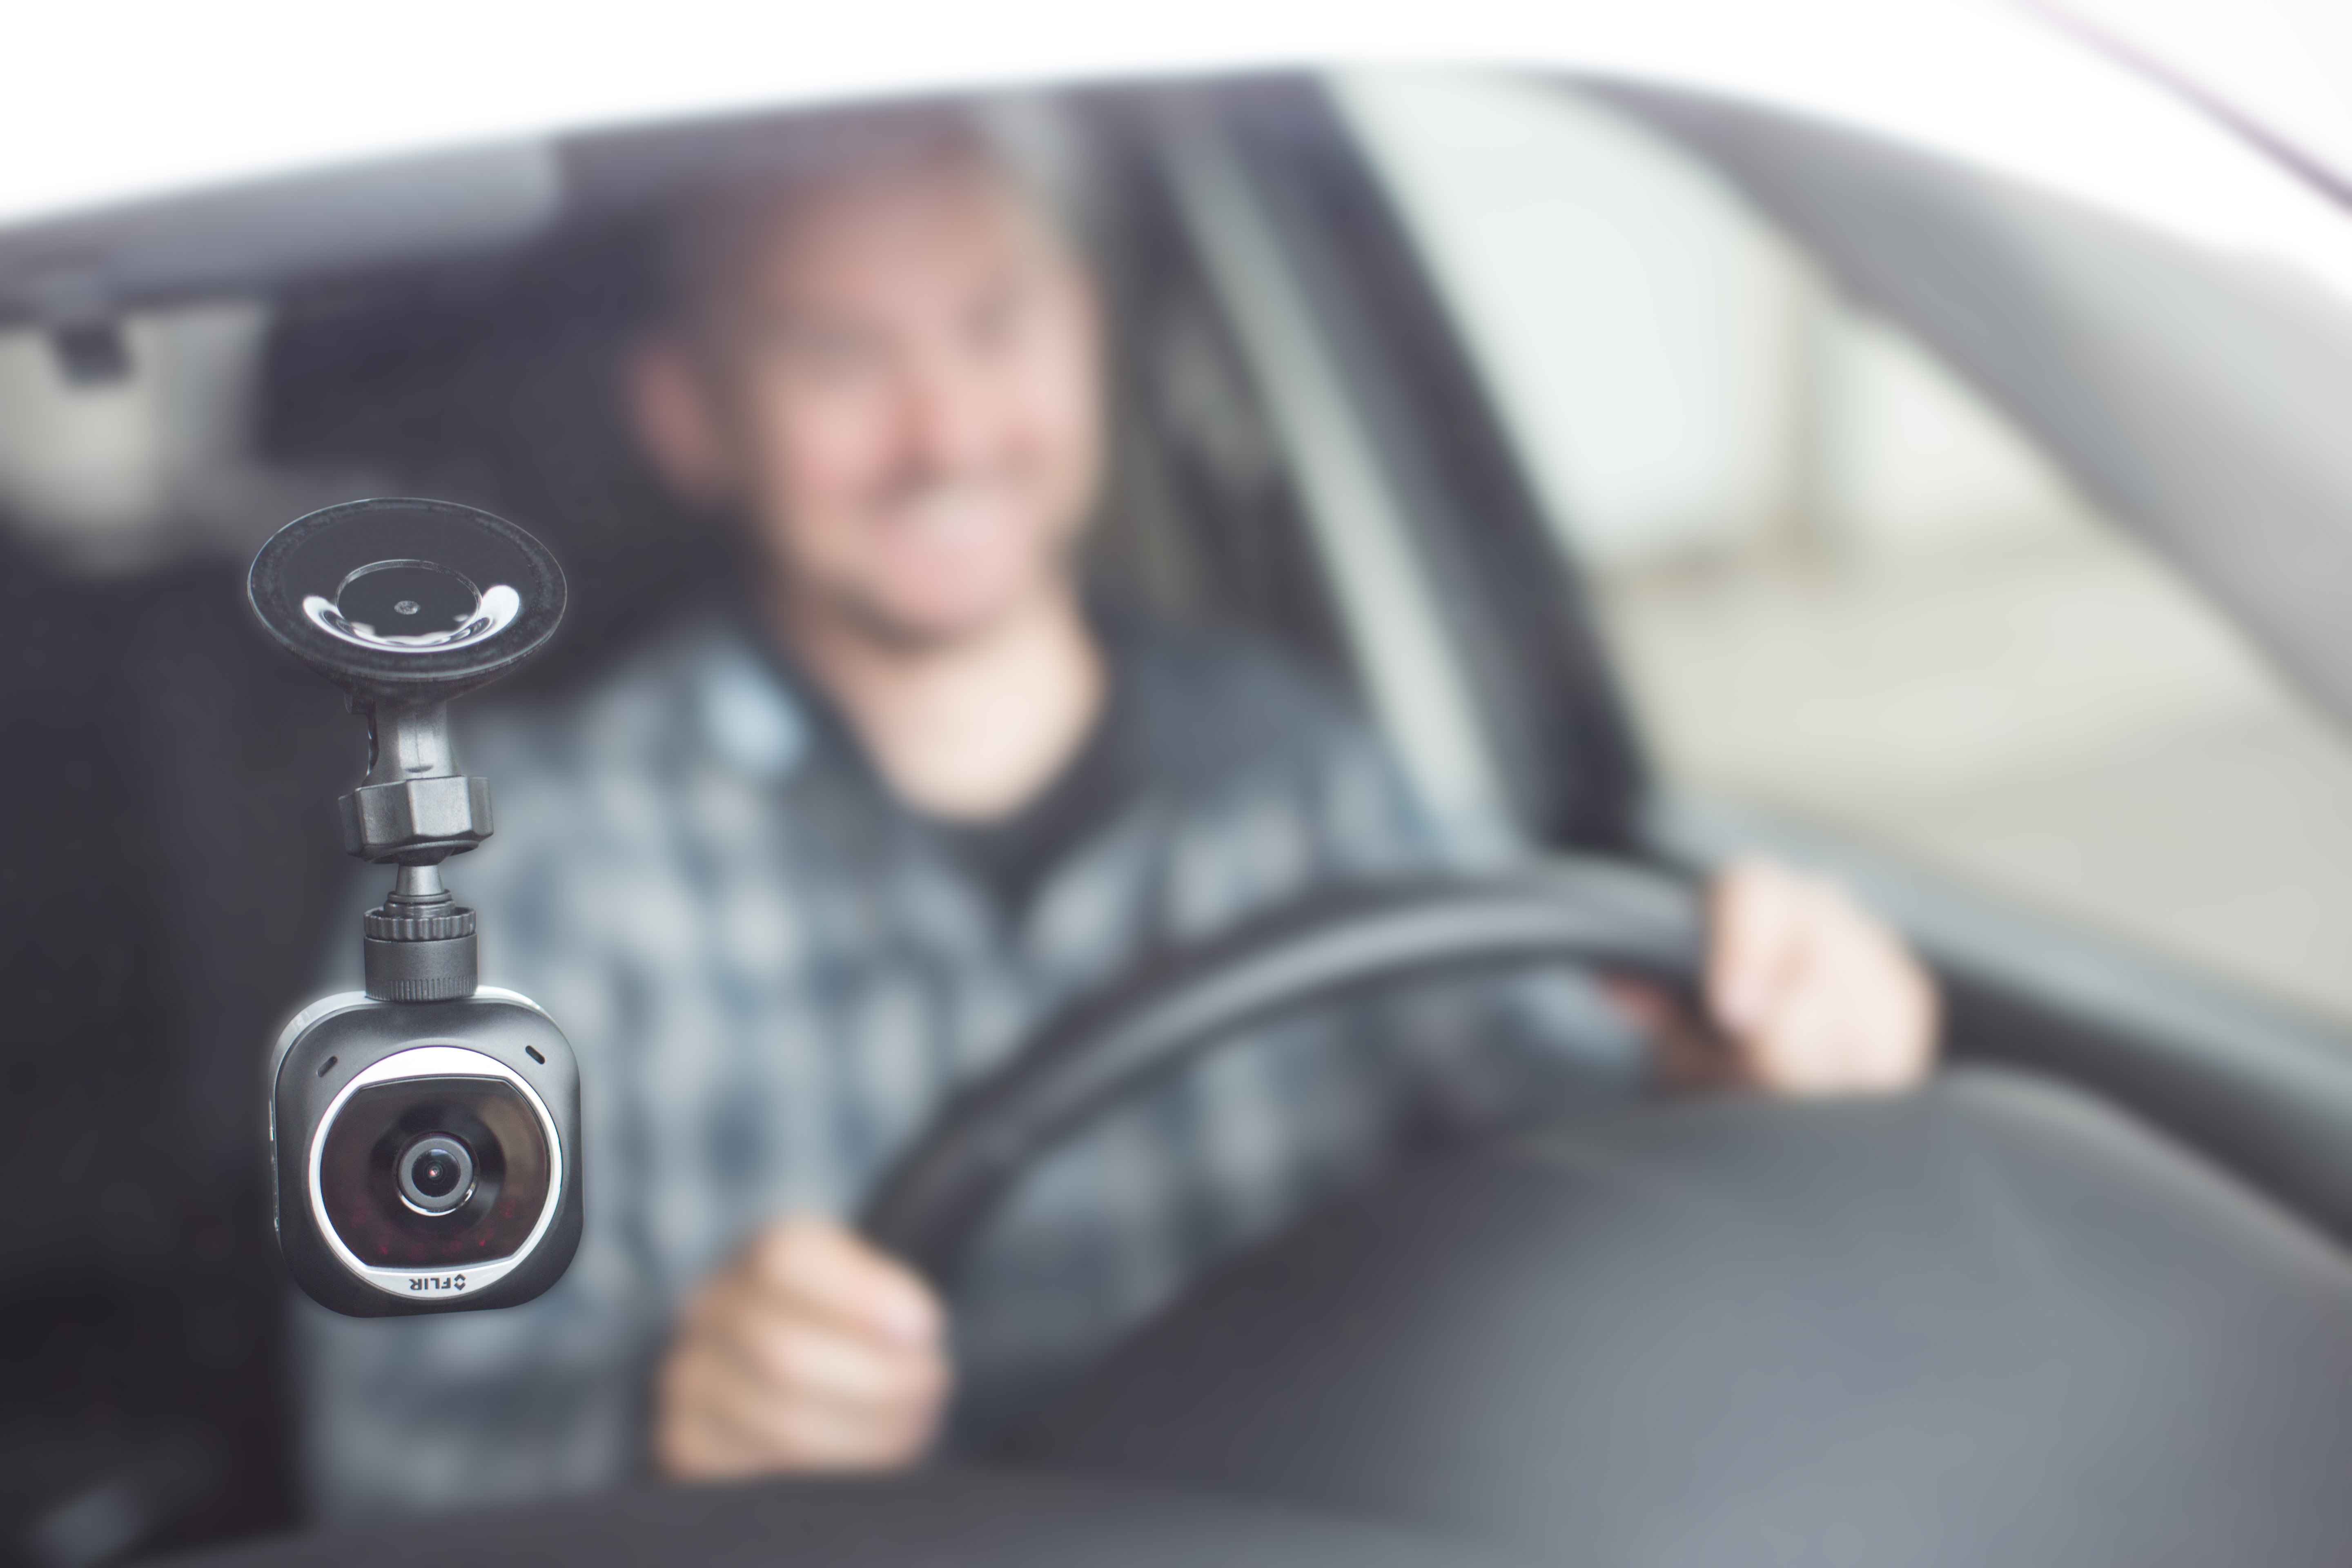 Security Cameras For Cars: The Flir FX Is A Security Camera With Bigger Ambitions